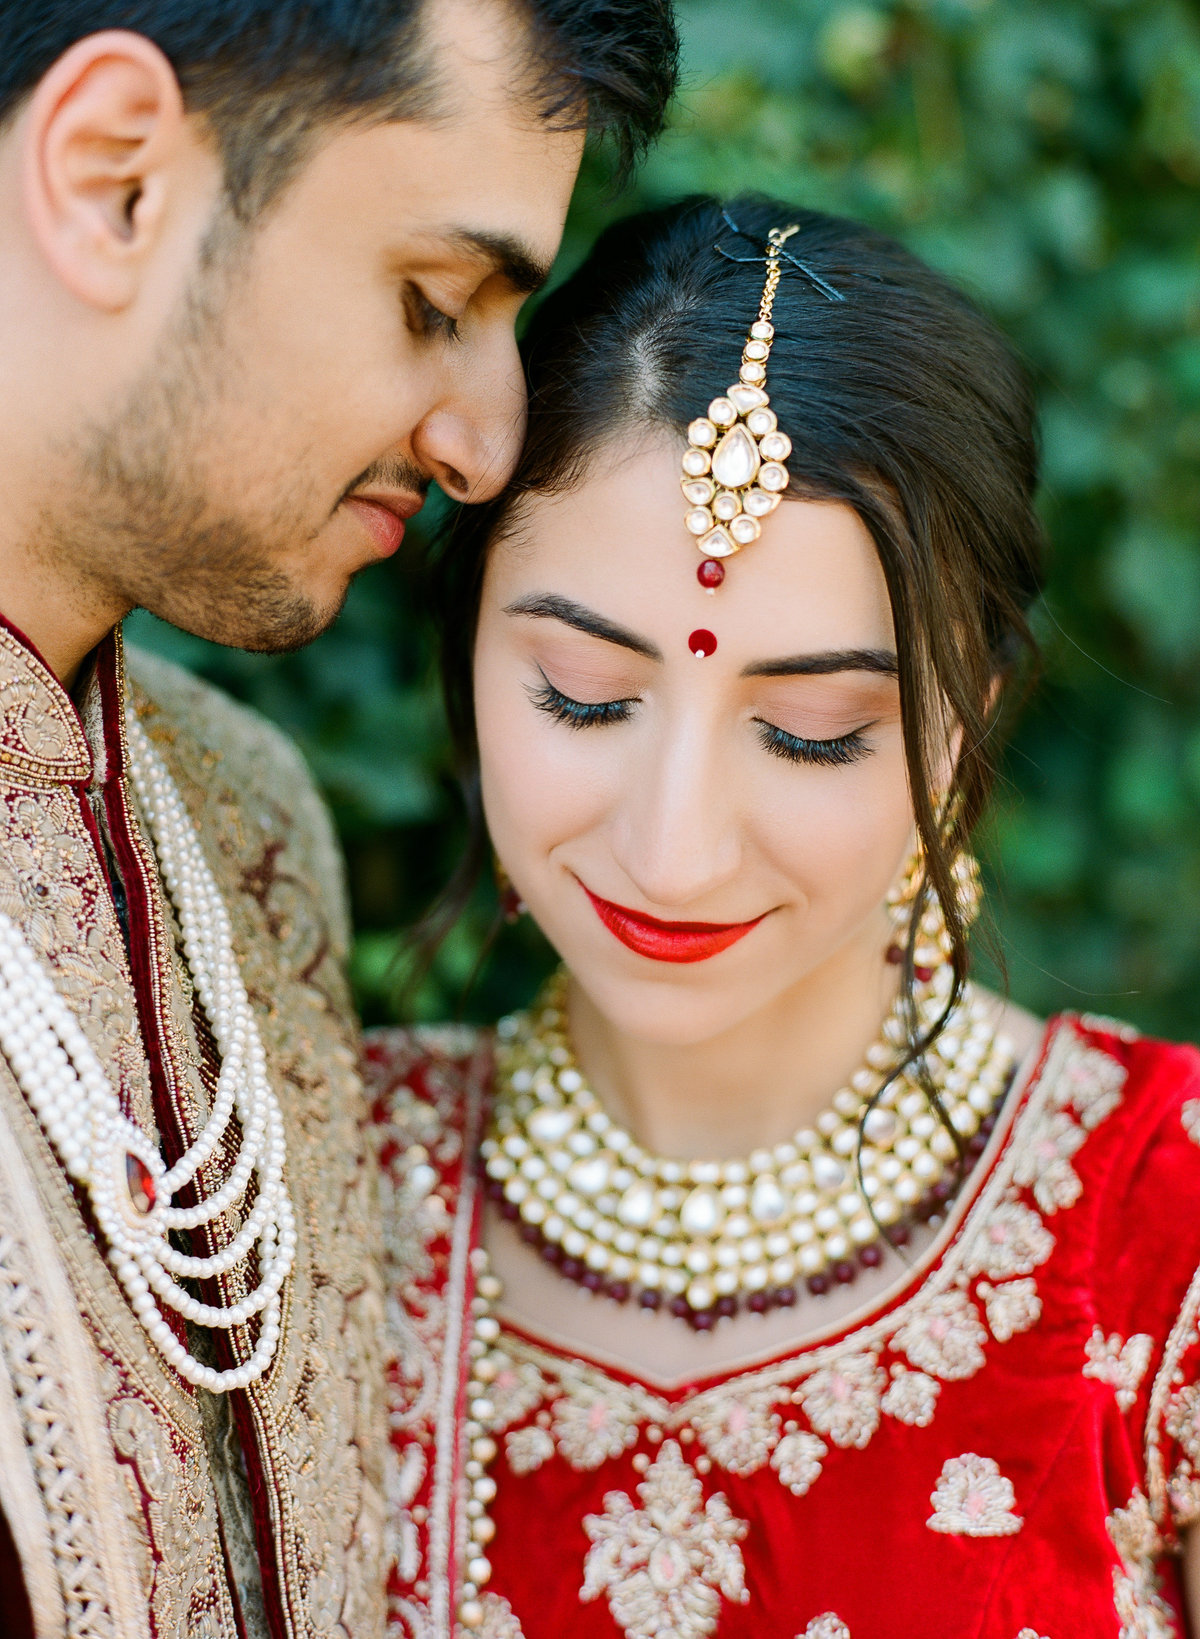 sasha-aneesh-wedding-bride-groom-indian-127